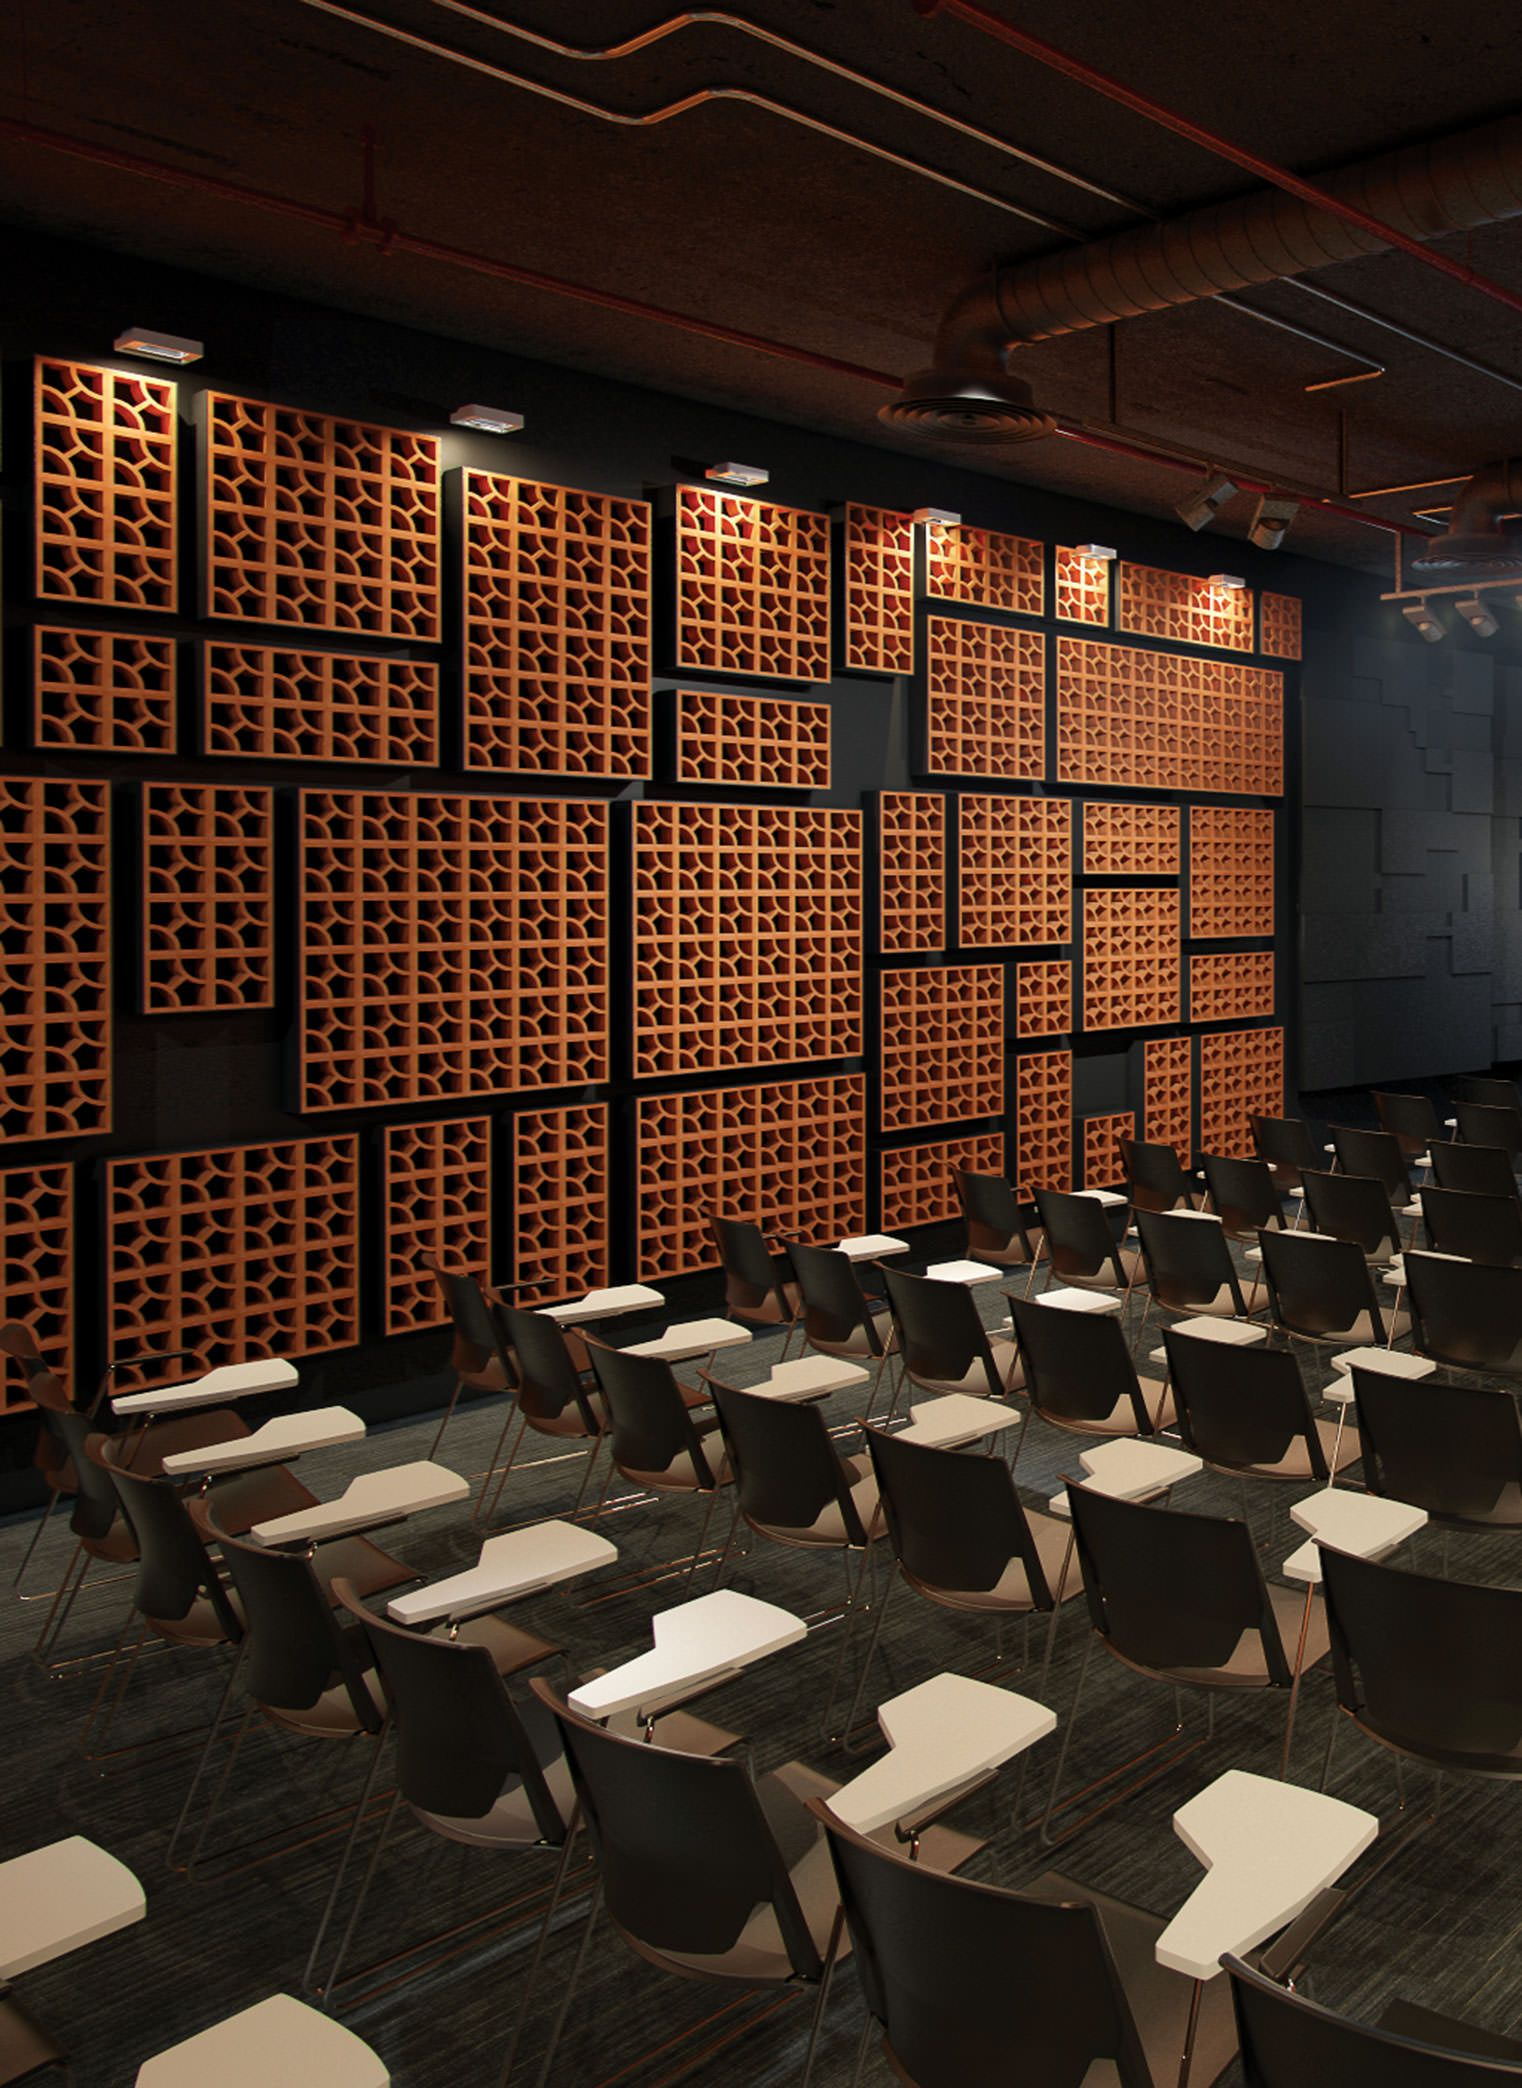 Google Auditorio Auditorium Wall Blocks Wall Apparent Swimming